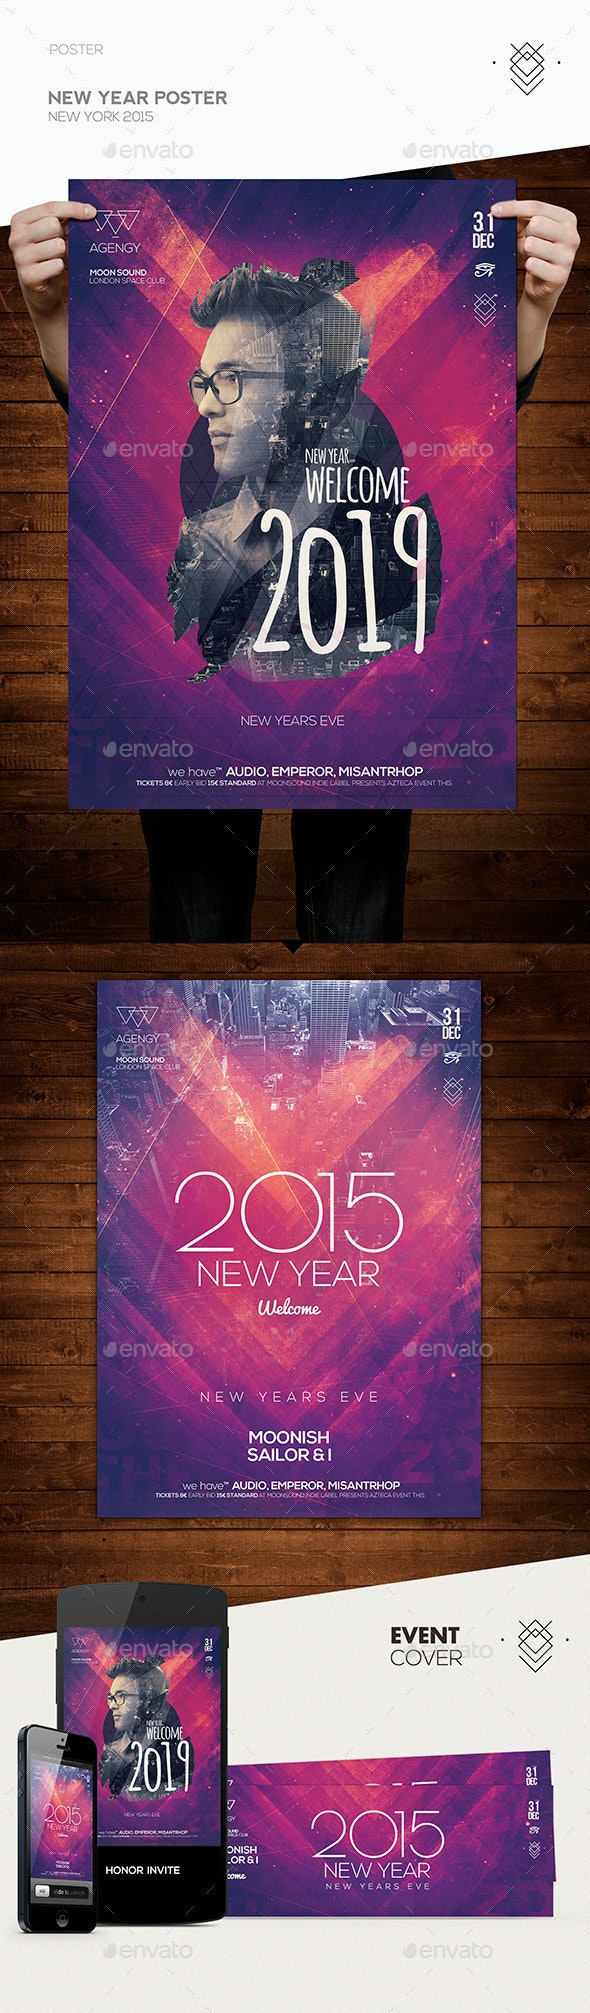 New Year Poster Flyer - Clubs & Parties Events